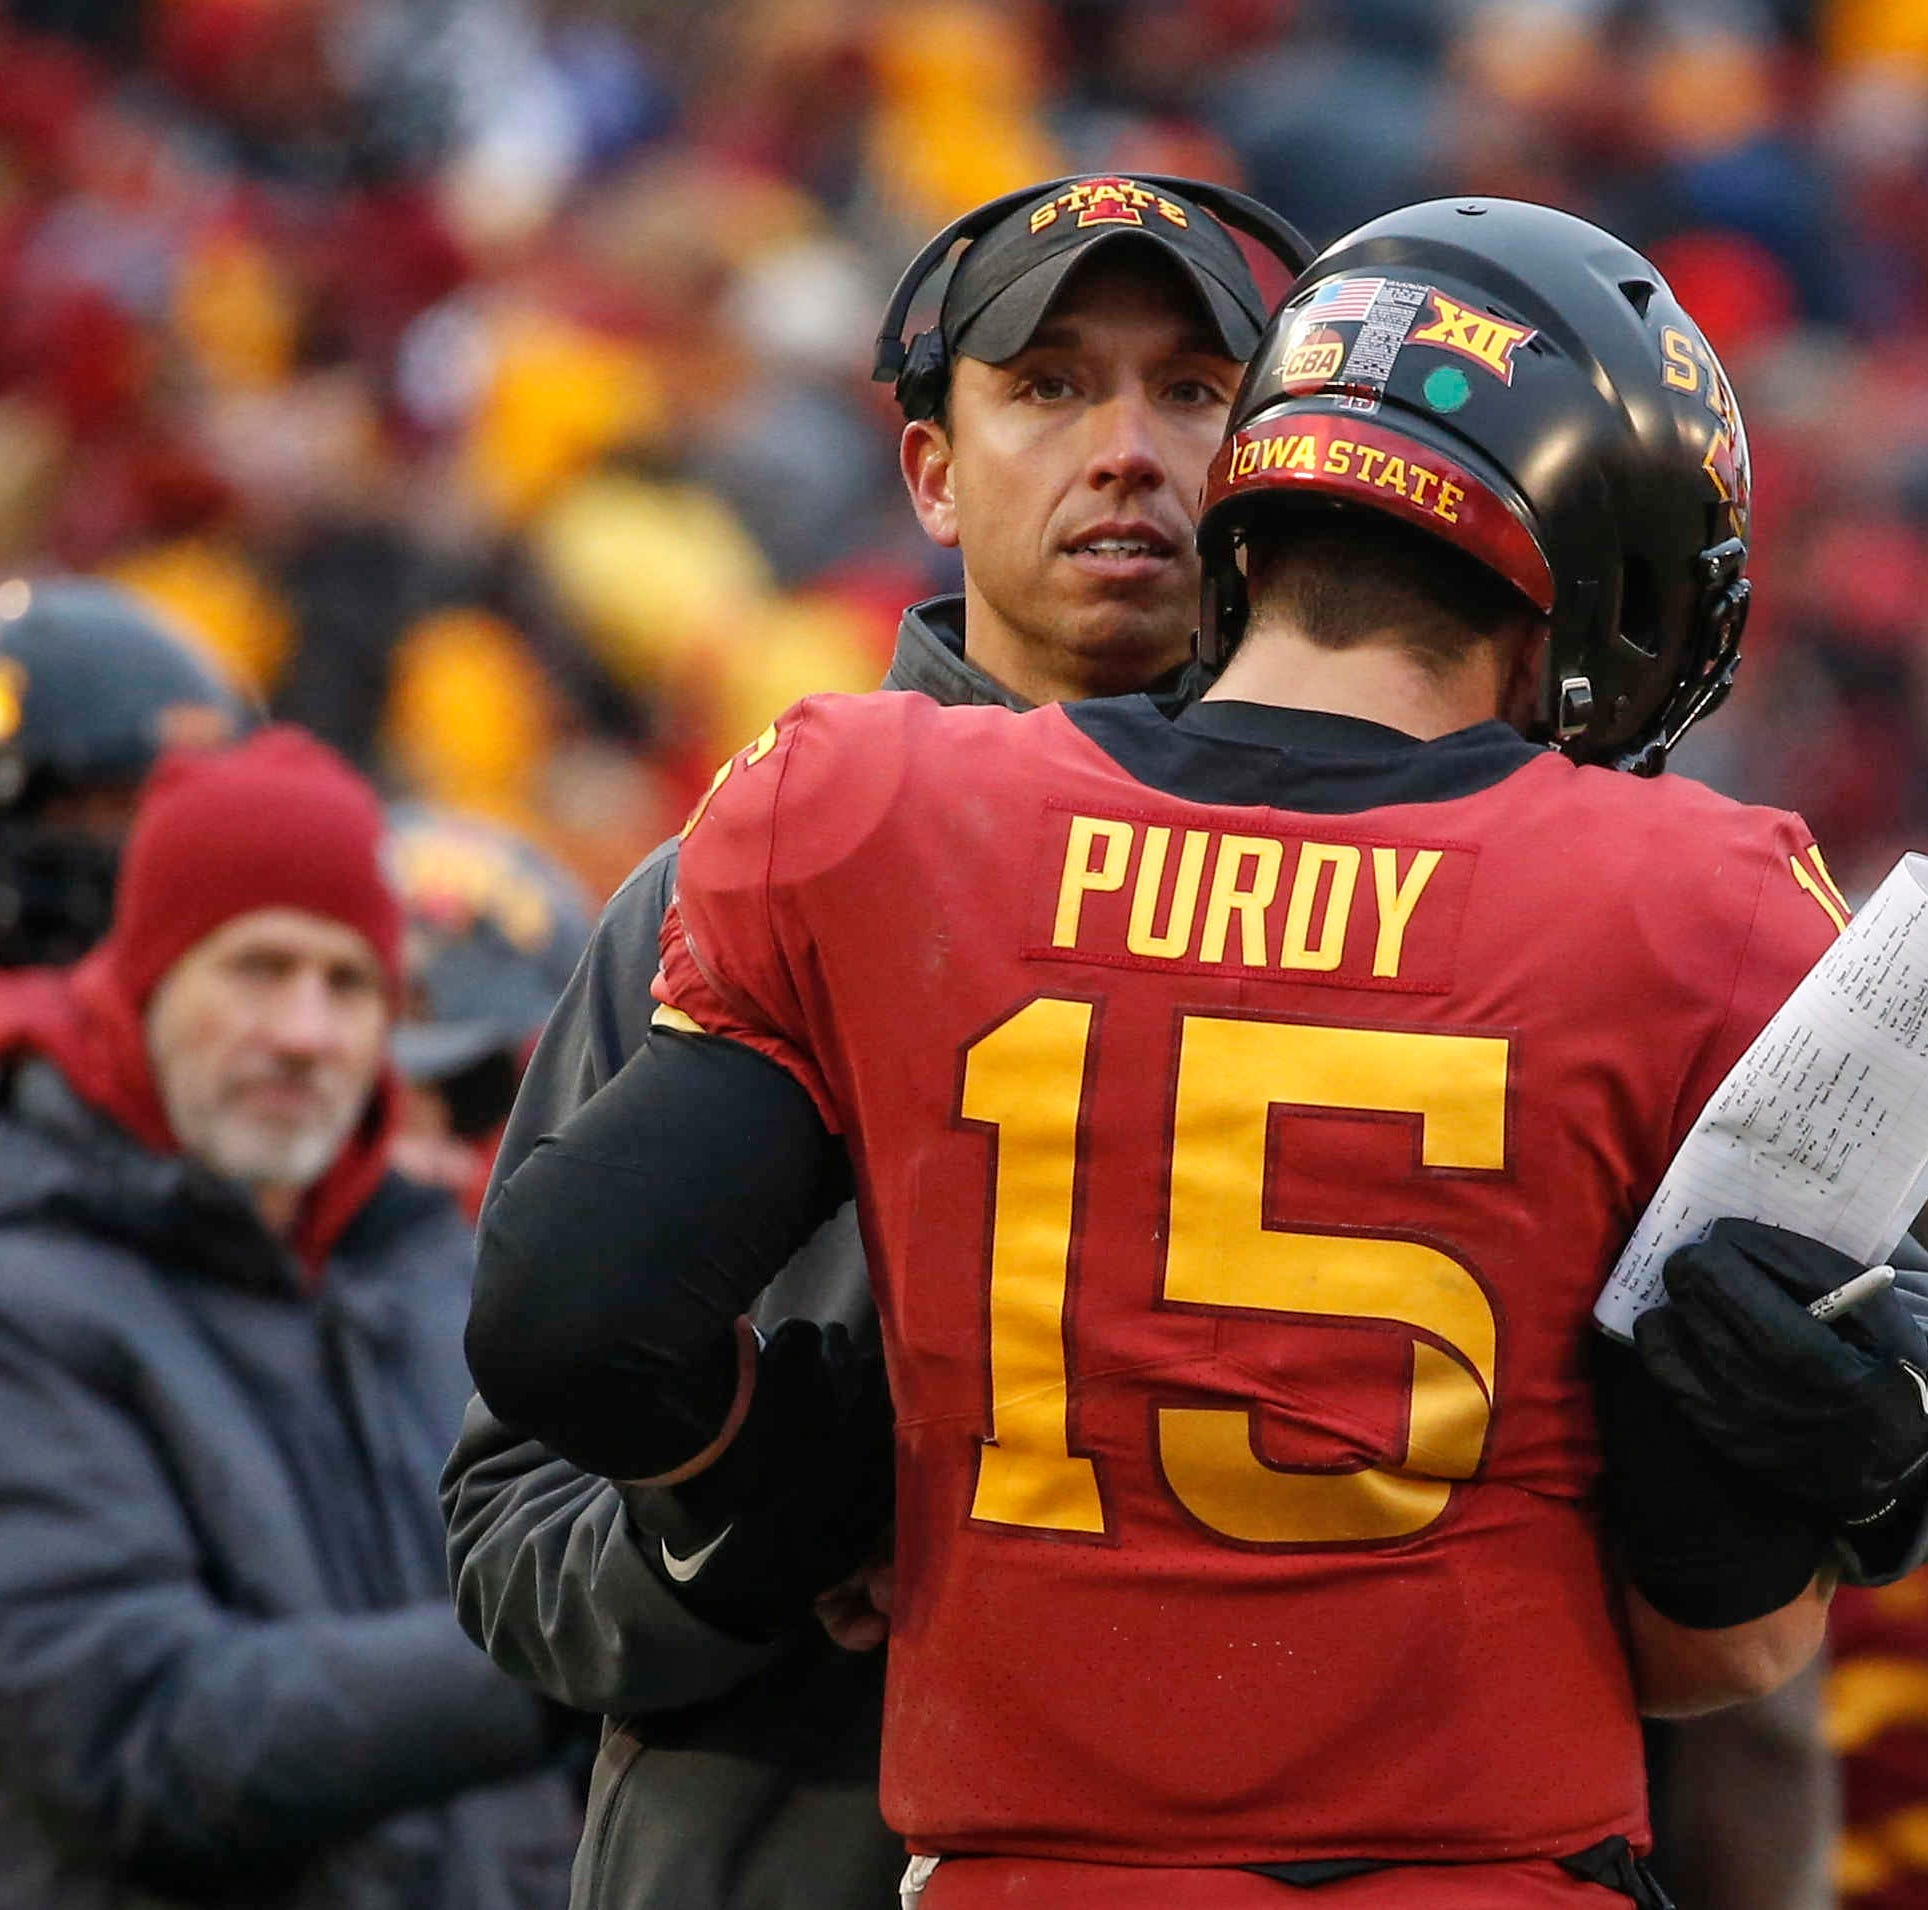 Iowa State controls its own destiny to the Big 12 title game